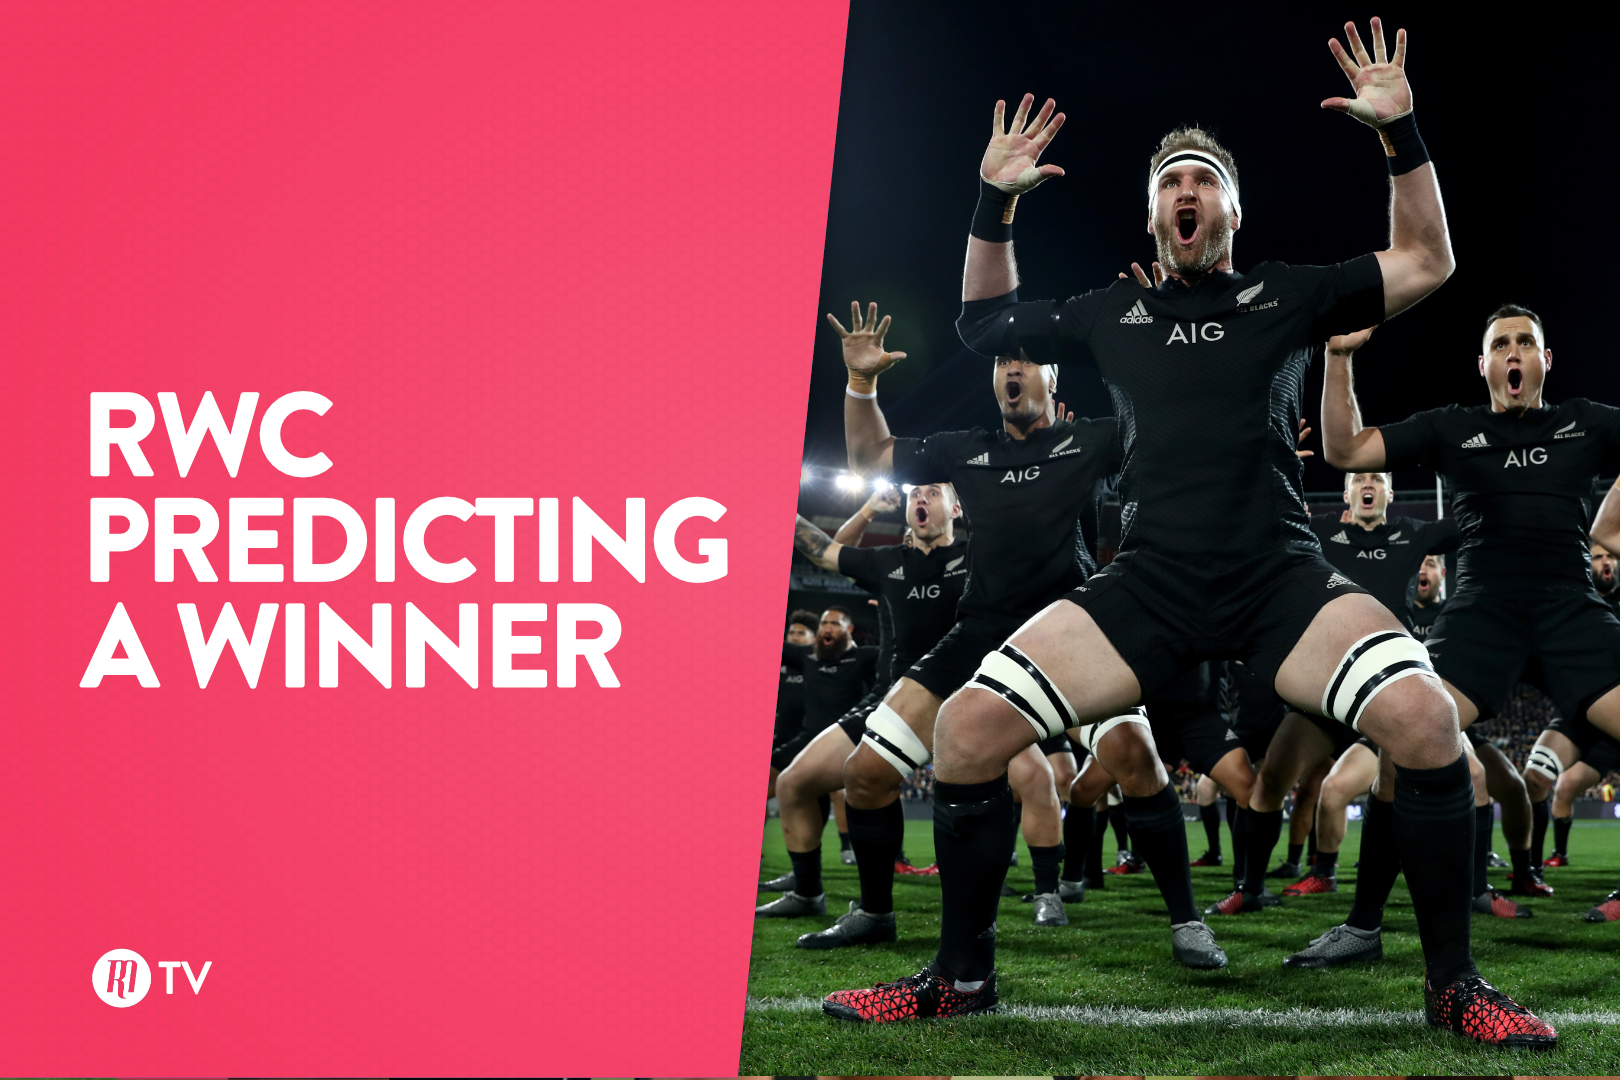 Predicting The Winner of the RWC: Fantasy Show